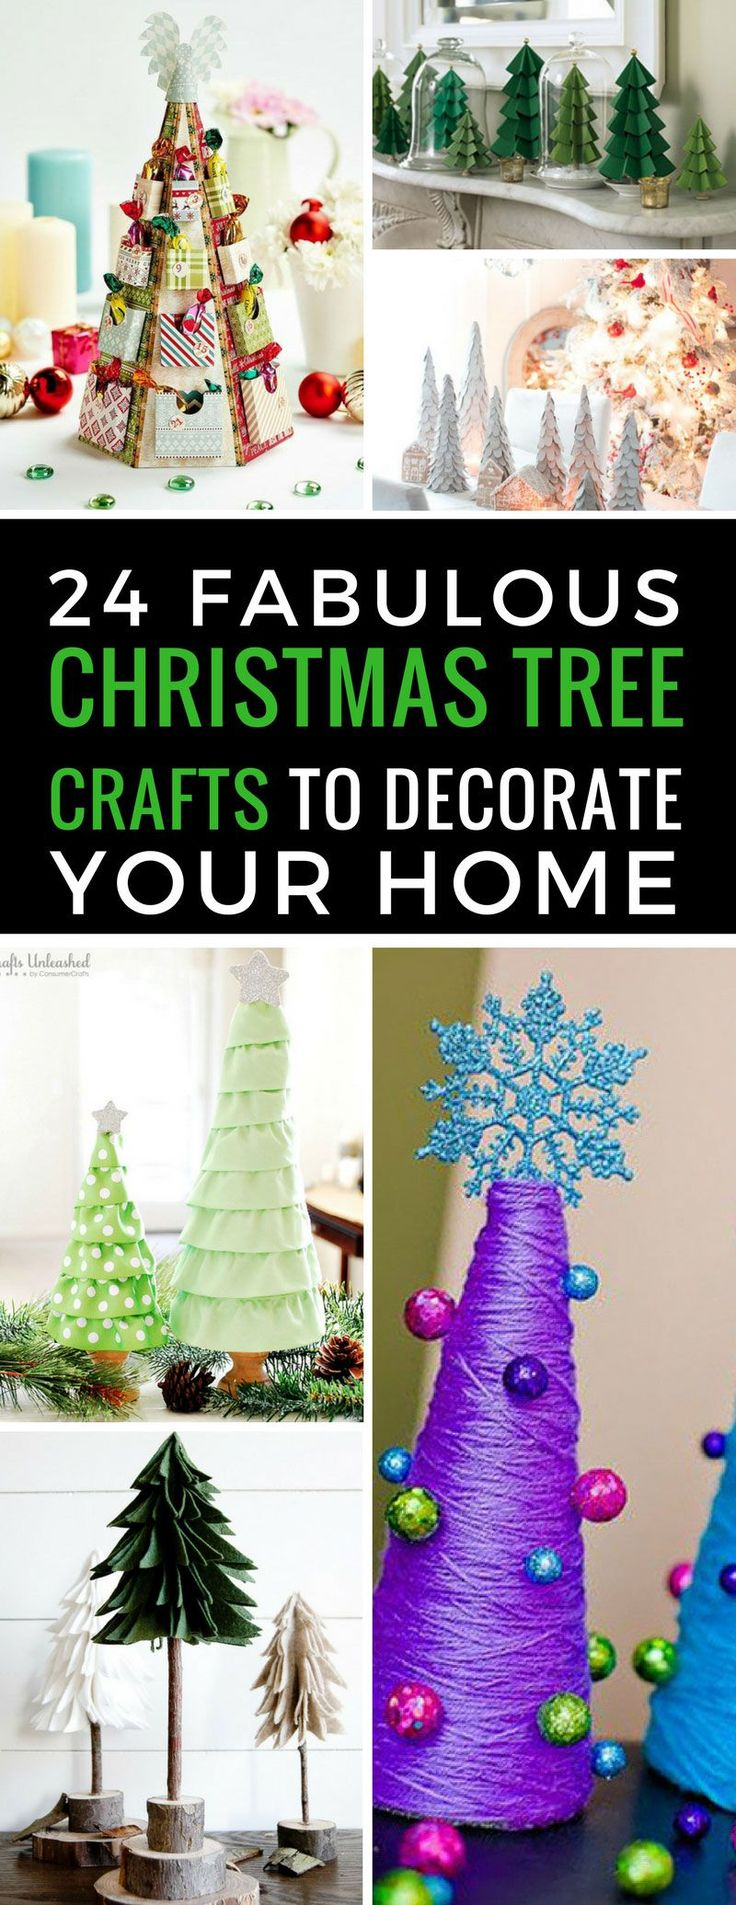 Best 25 modern christmas trees ideas on pinterest for Christmas decorations to make at home for free